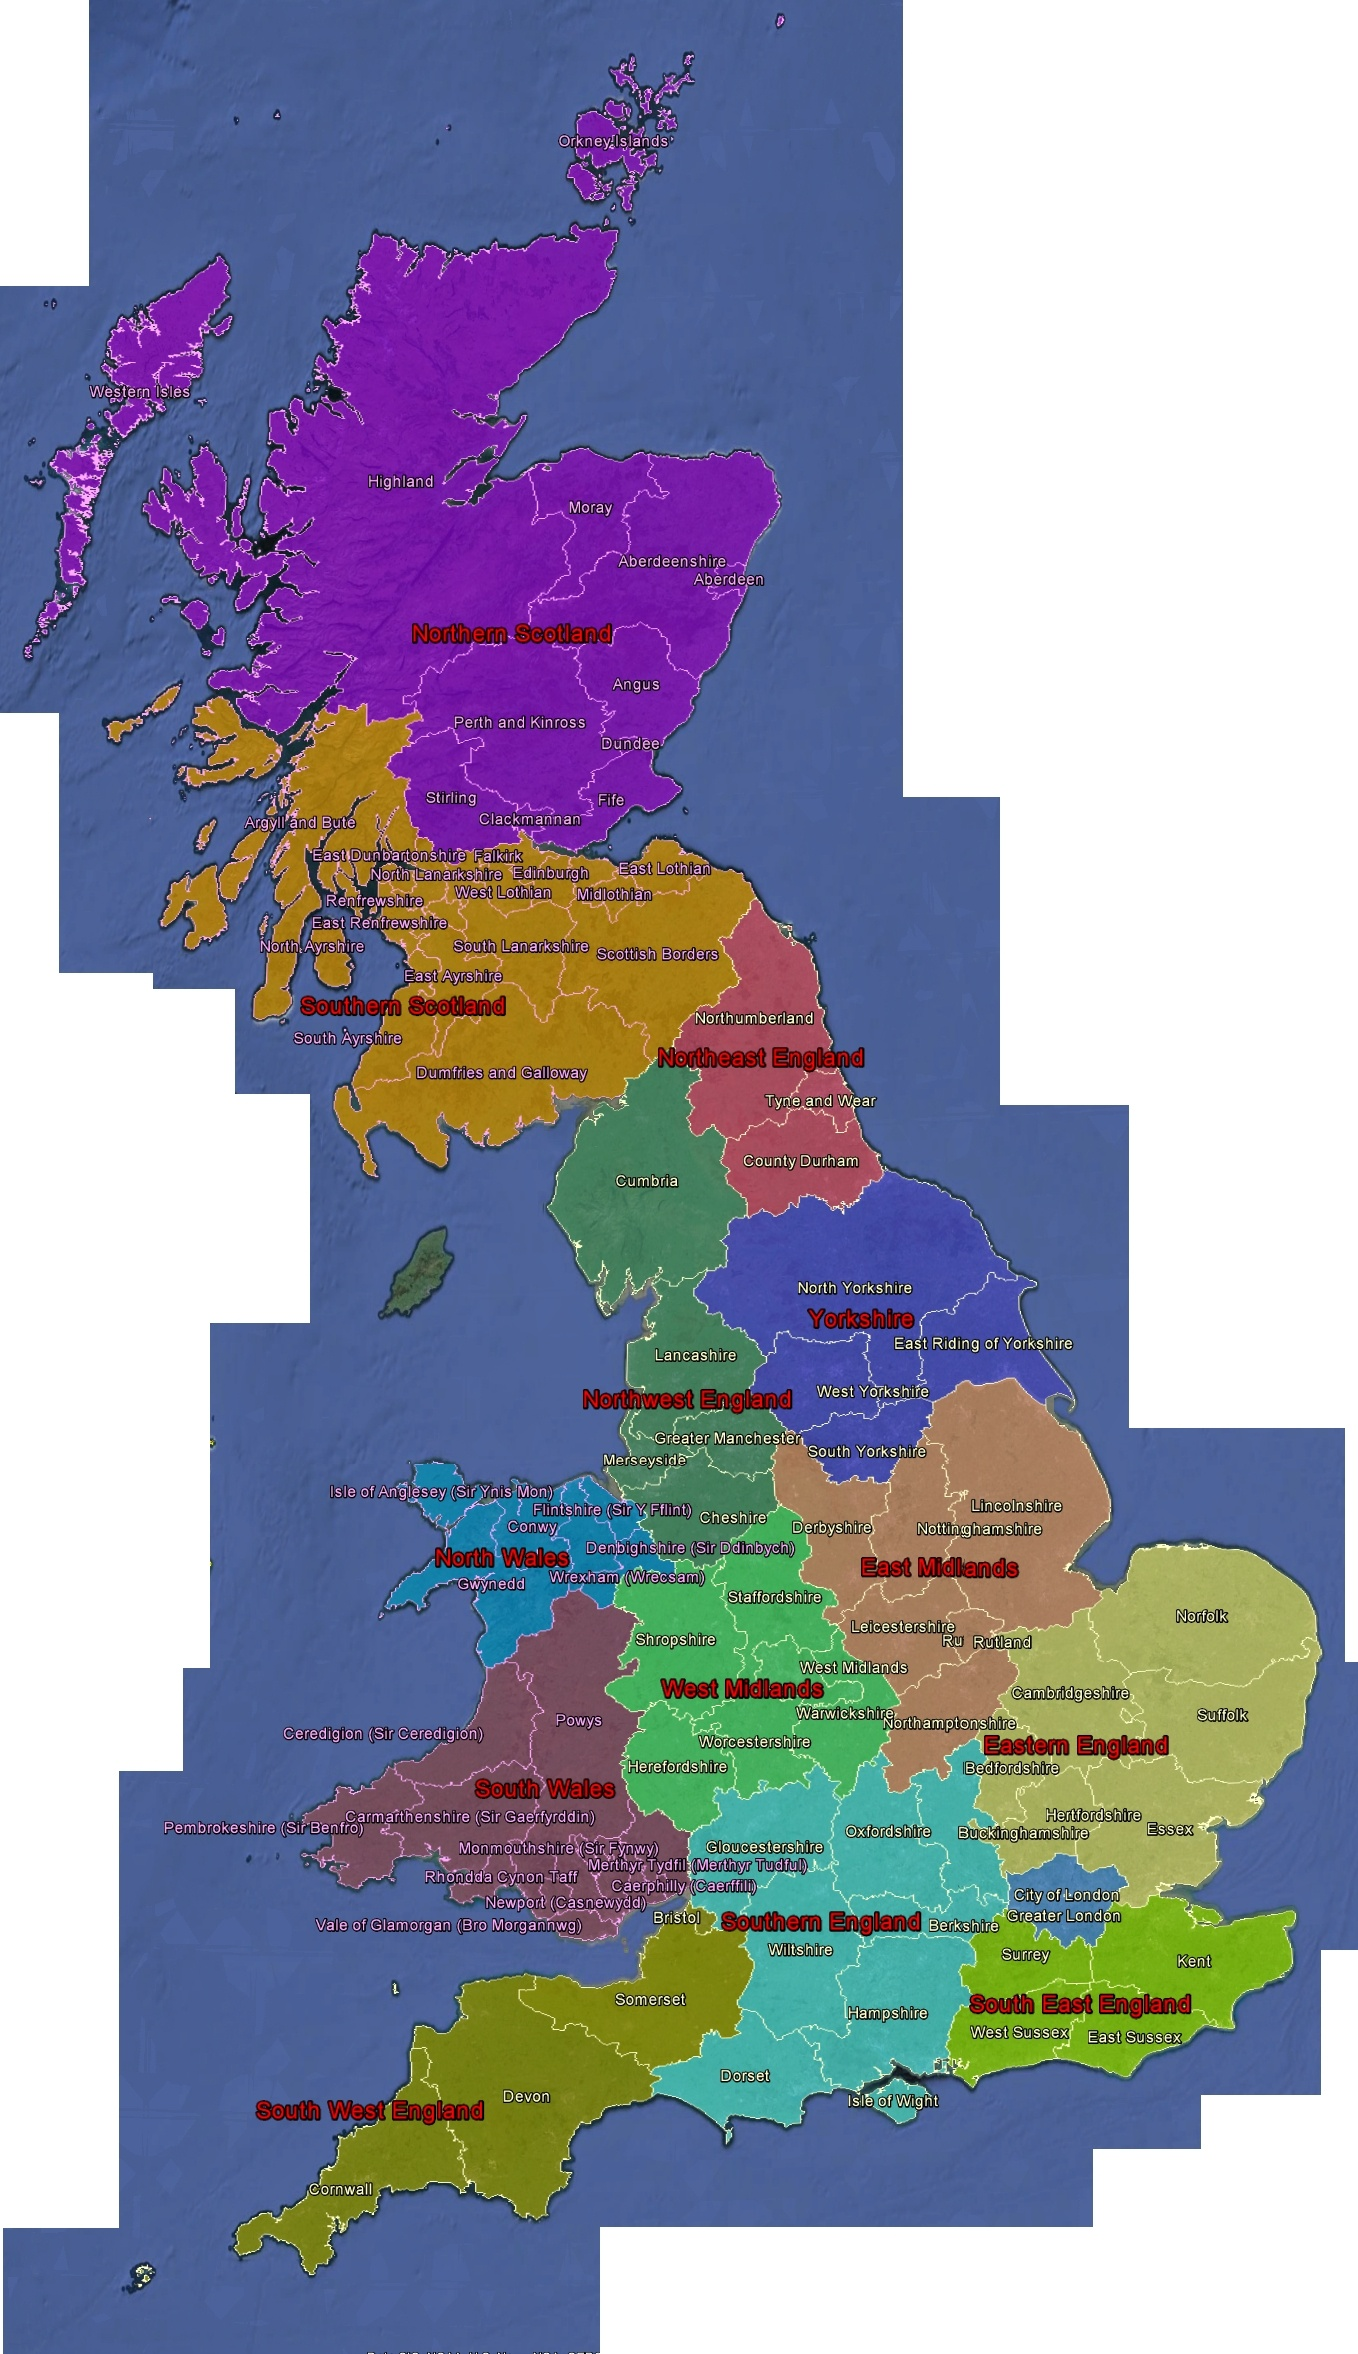 click here for a very large map showing the county boundaries